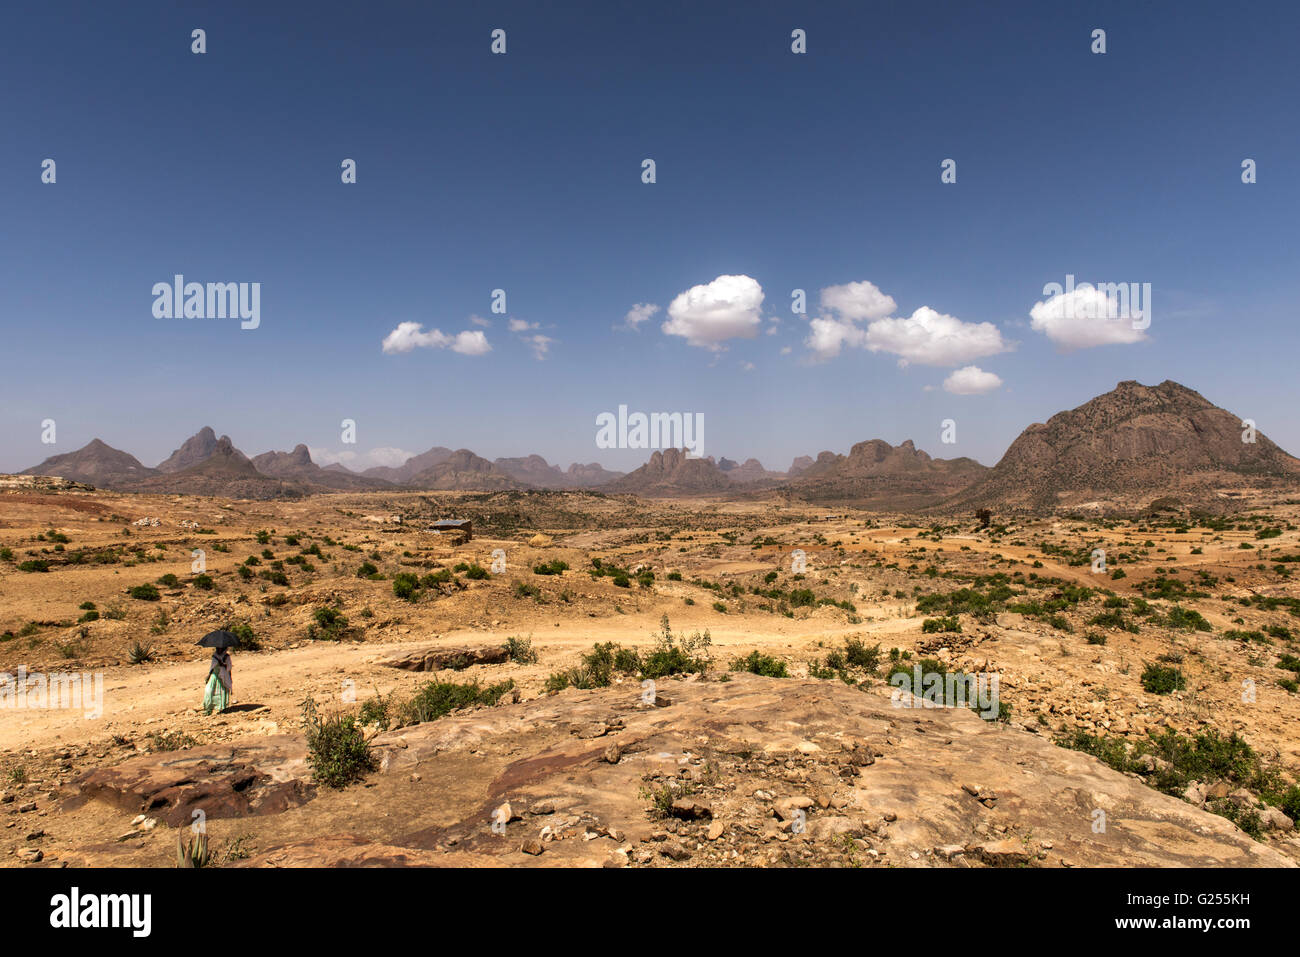 View of Gheralta with woman walking in the foreground, Ethiopia - Stock Image